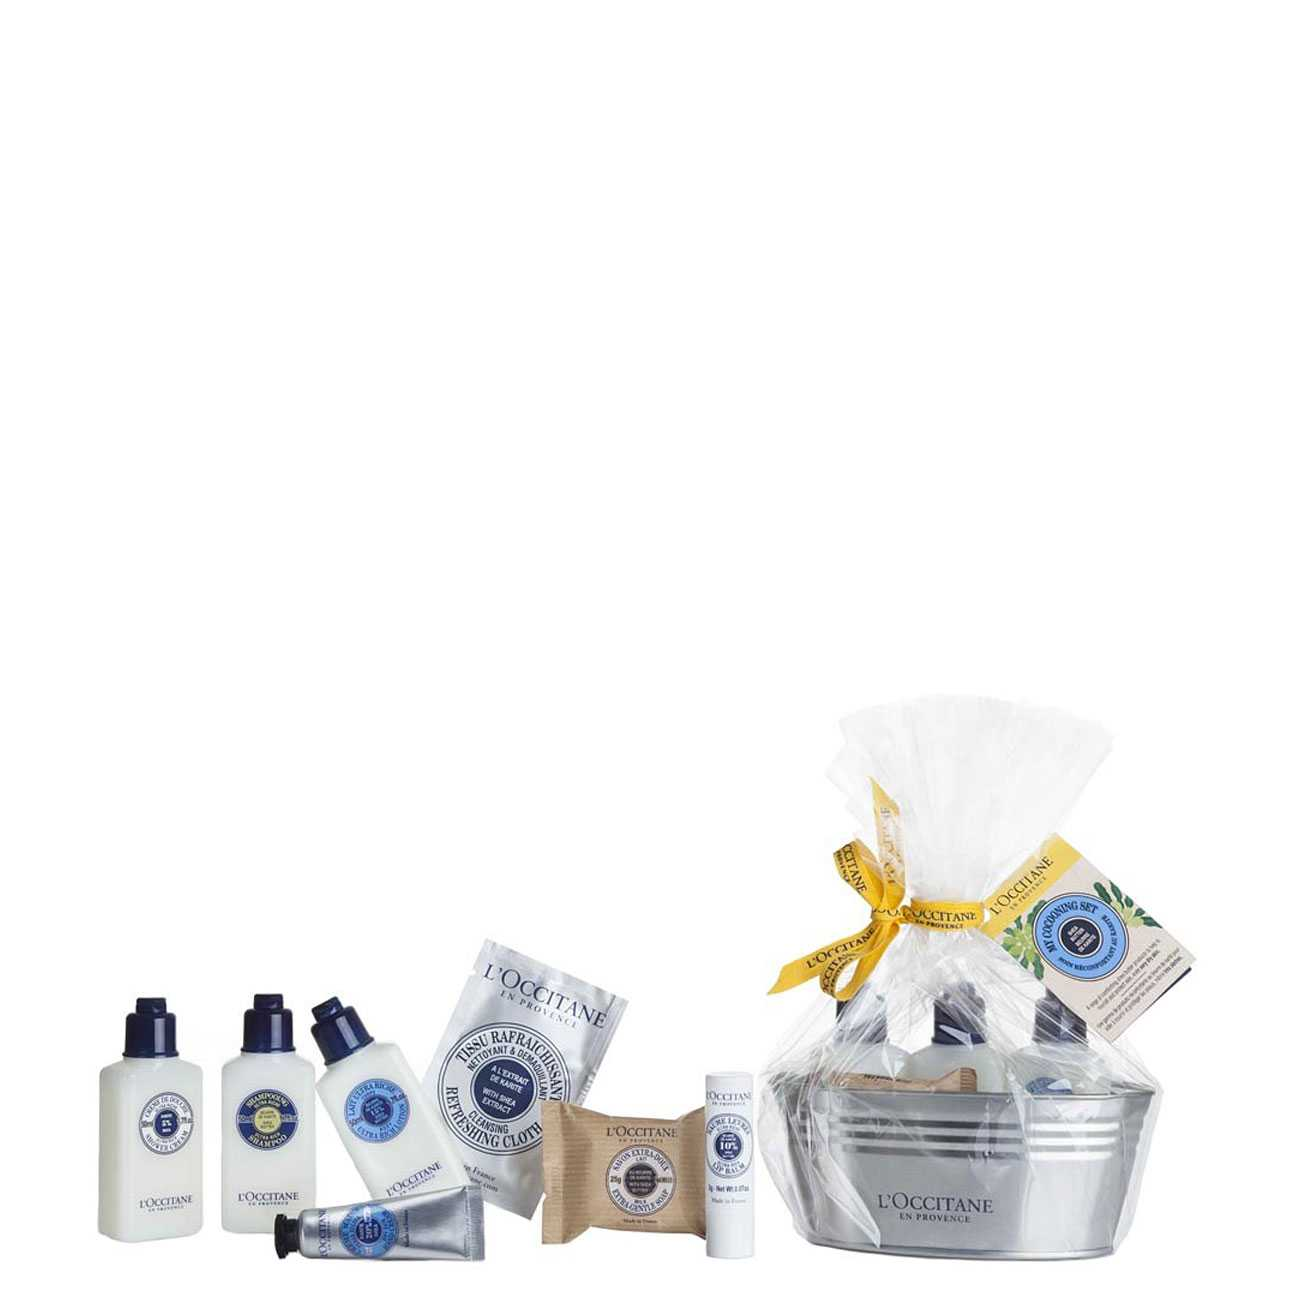 My Cocooning Set 128 G L'occitane imagine 2021 bestvalue.eu